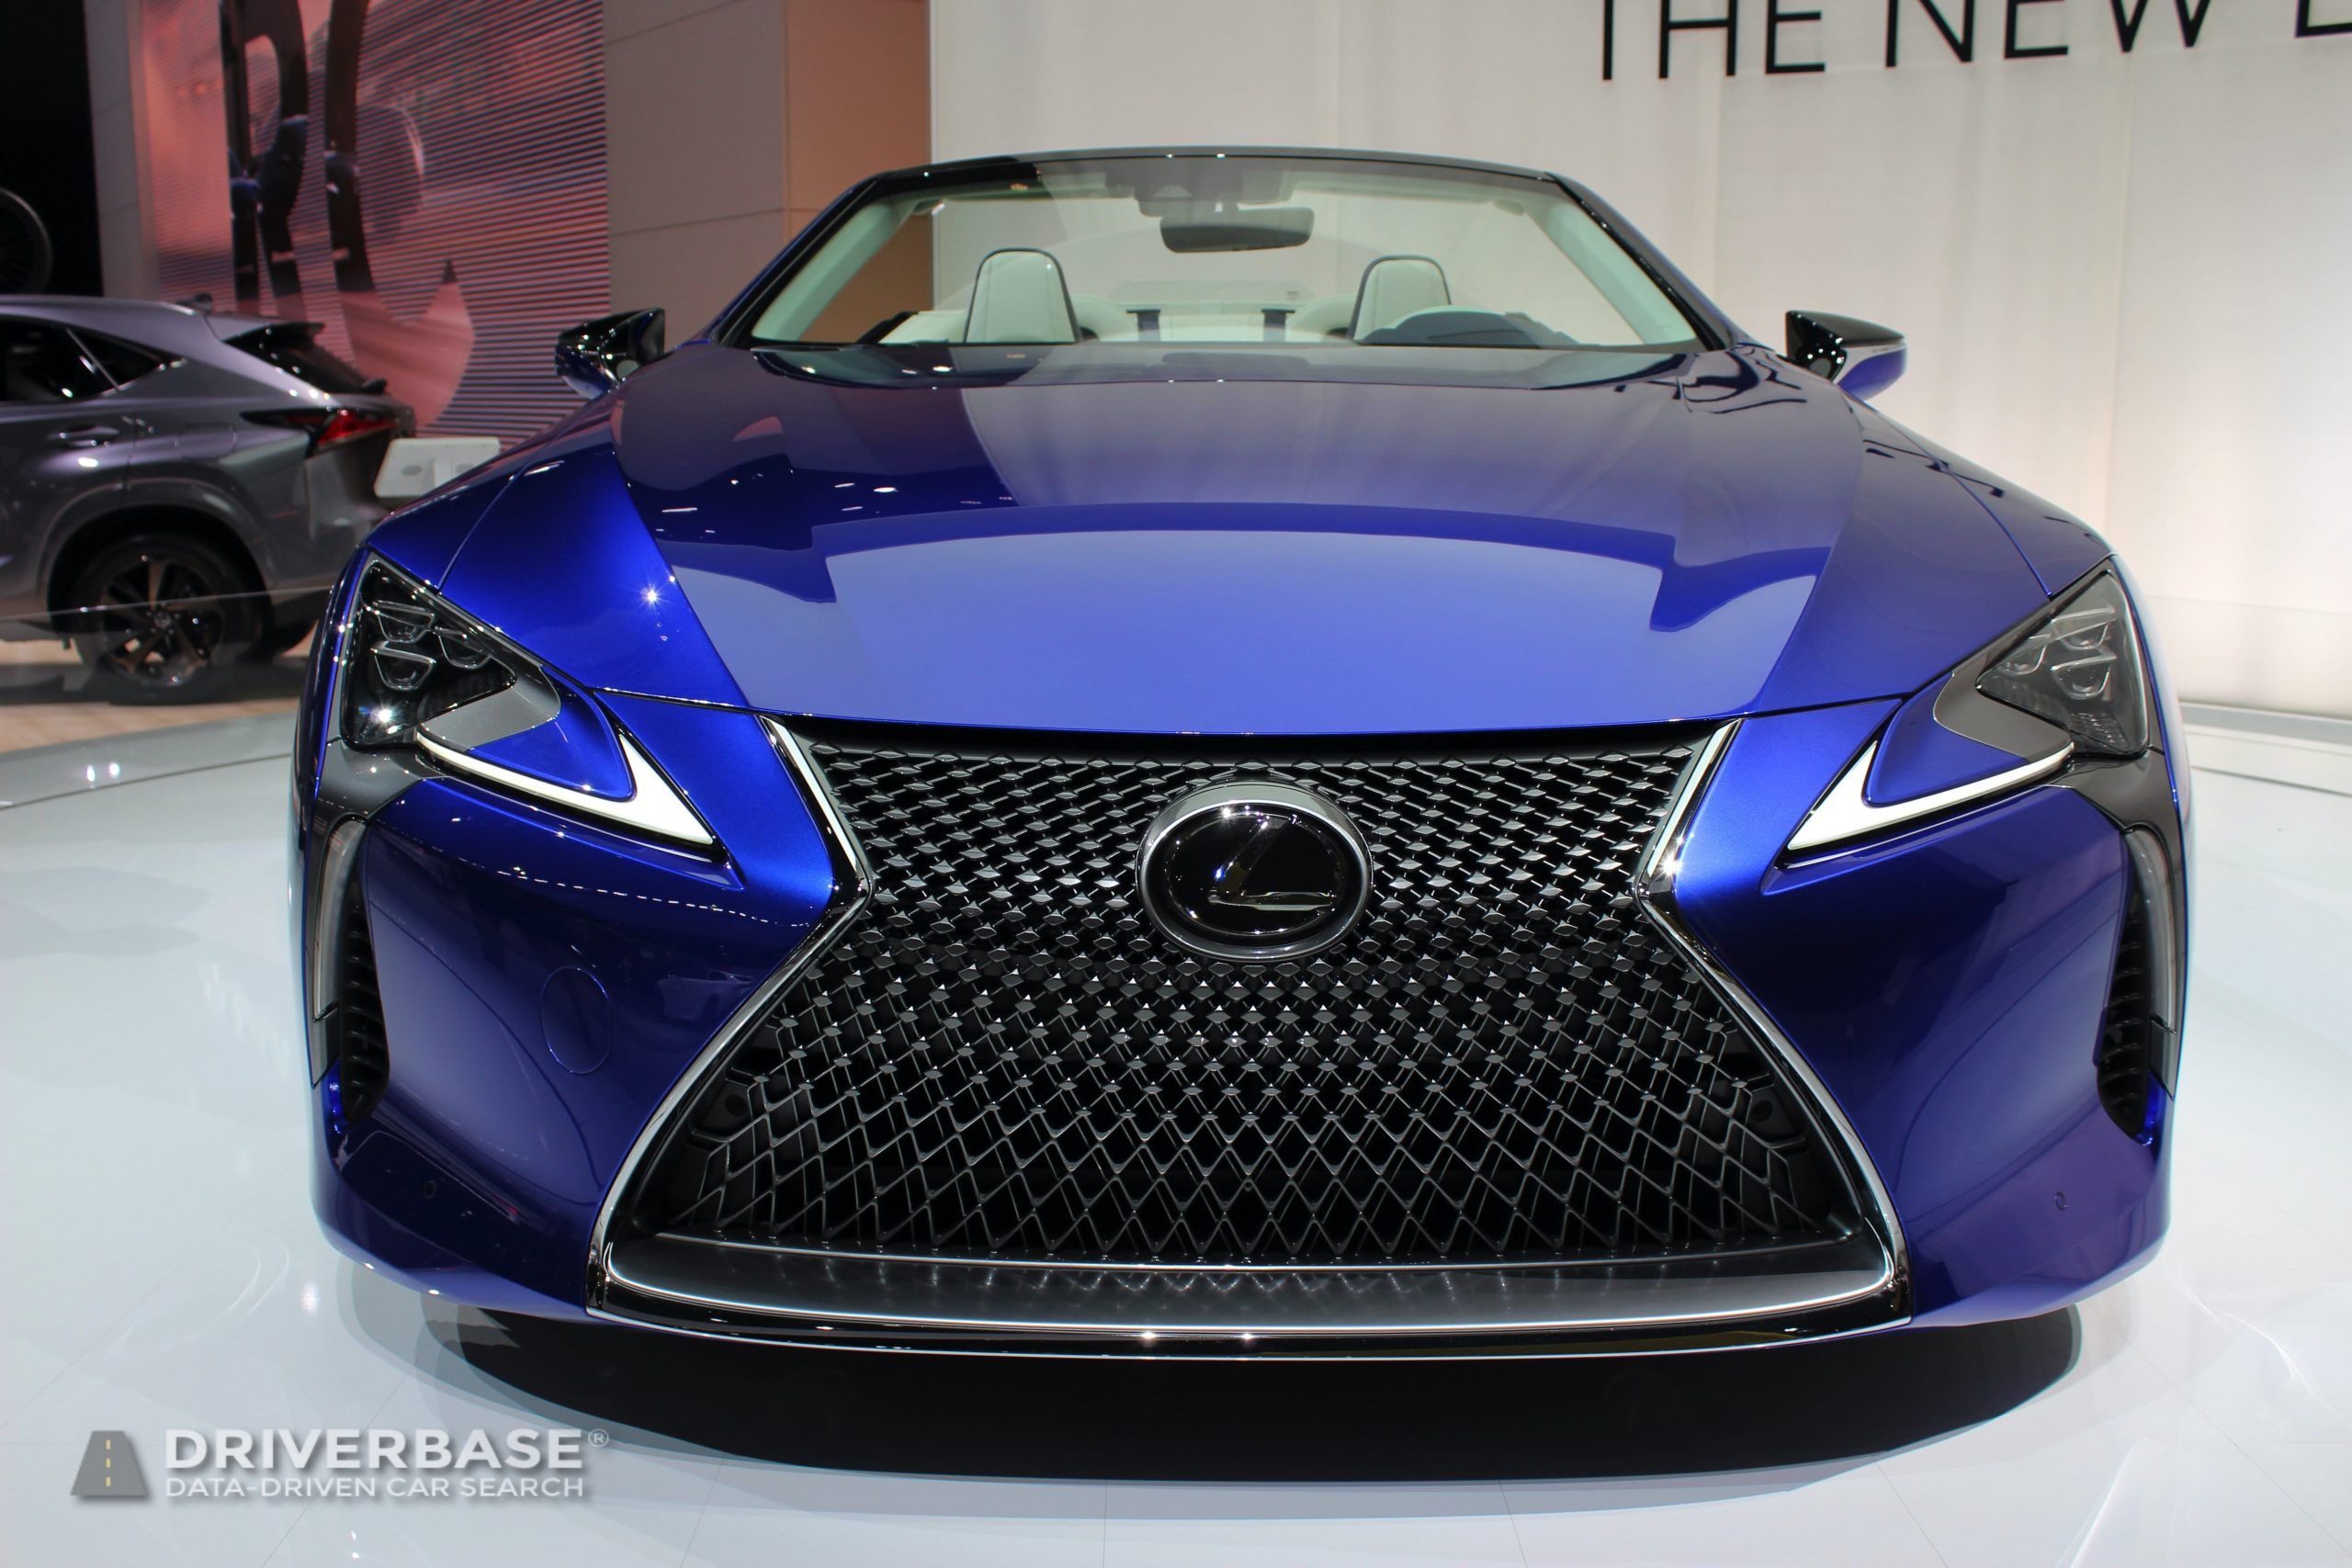 2020 Lexus LC 500 Convertible at the 2019 Los Angeles Auto Show